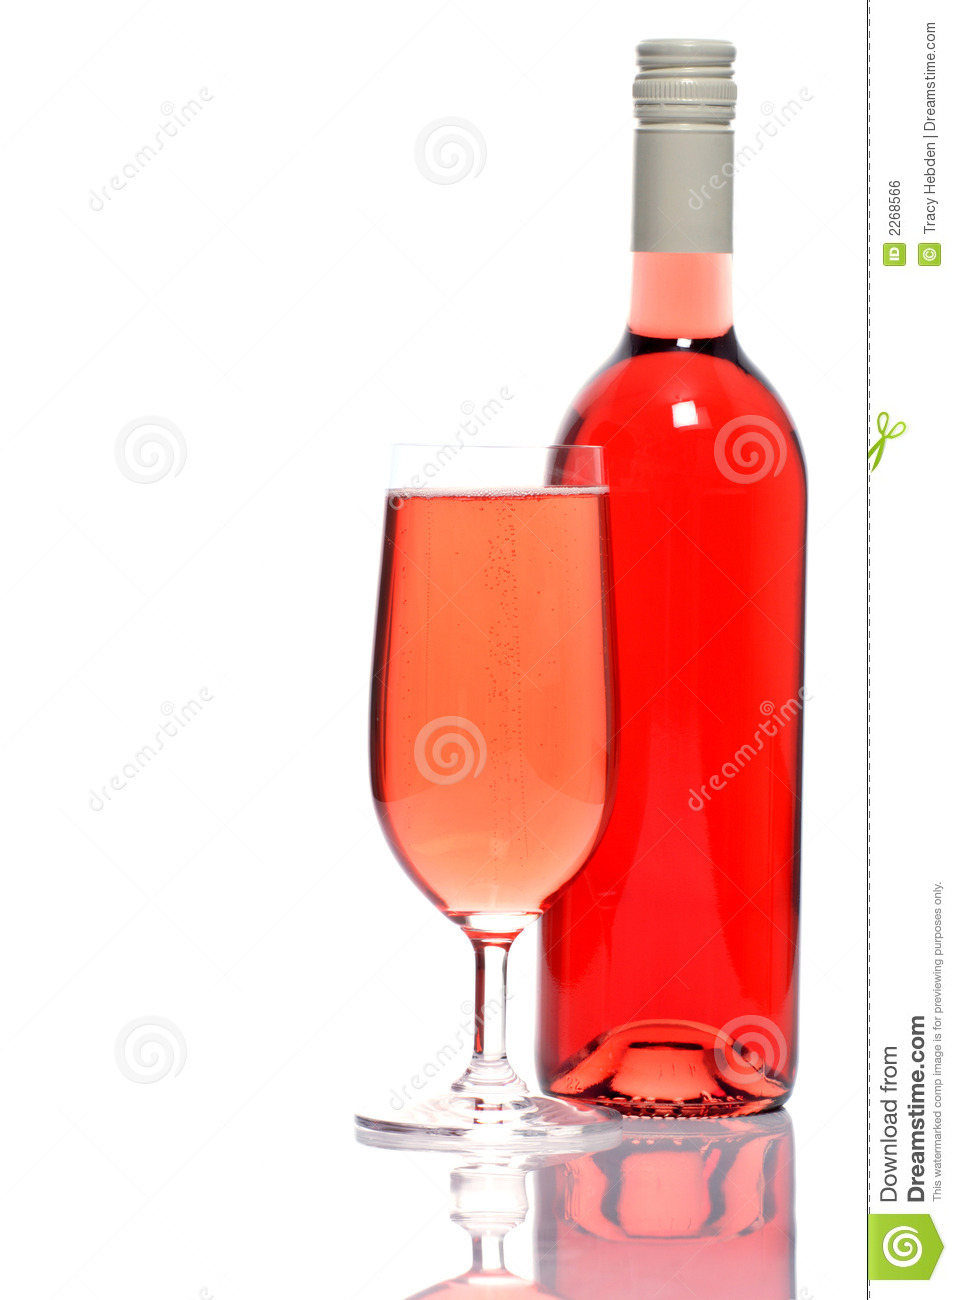 Rose Wine Bottle And Glass Royalty Free Stock Image - Image: 2268566